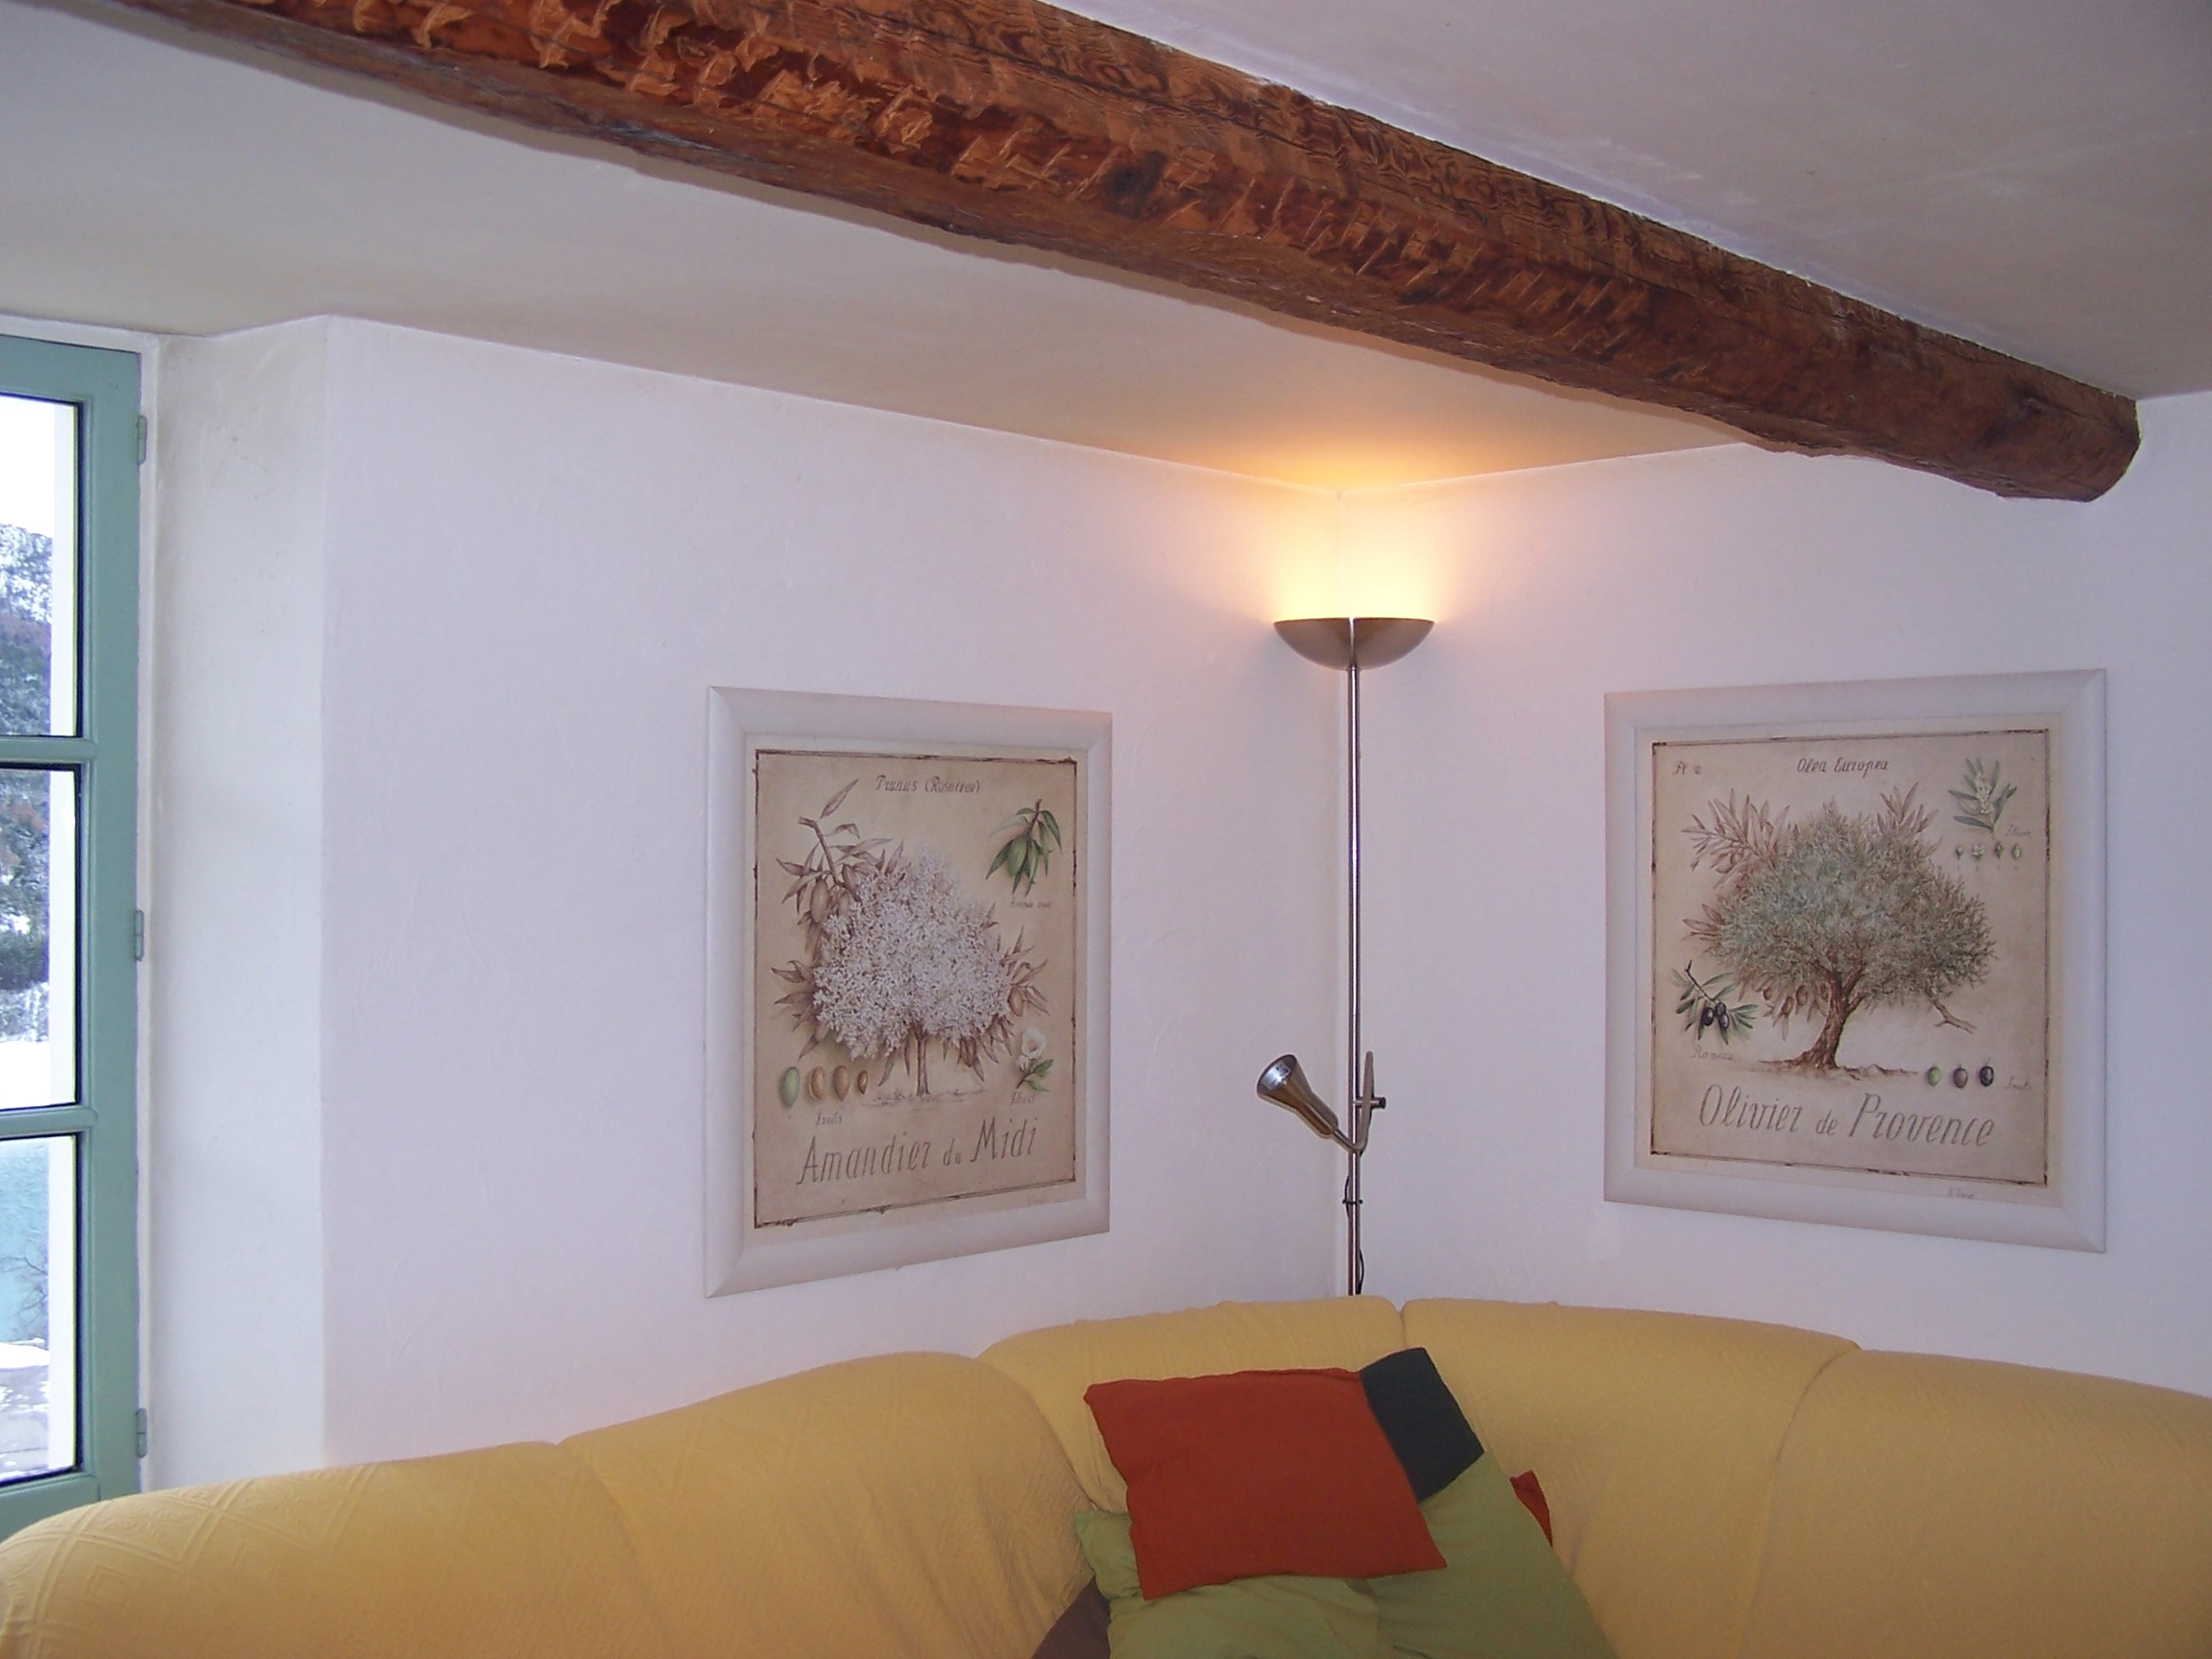 La d coration proven ale volue en provence - Photos de decoration ...